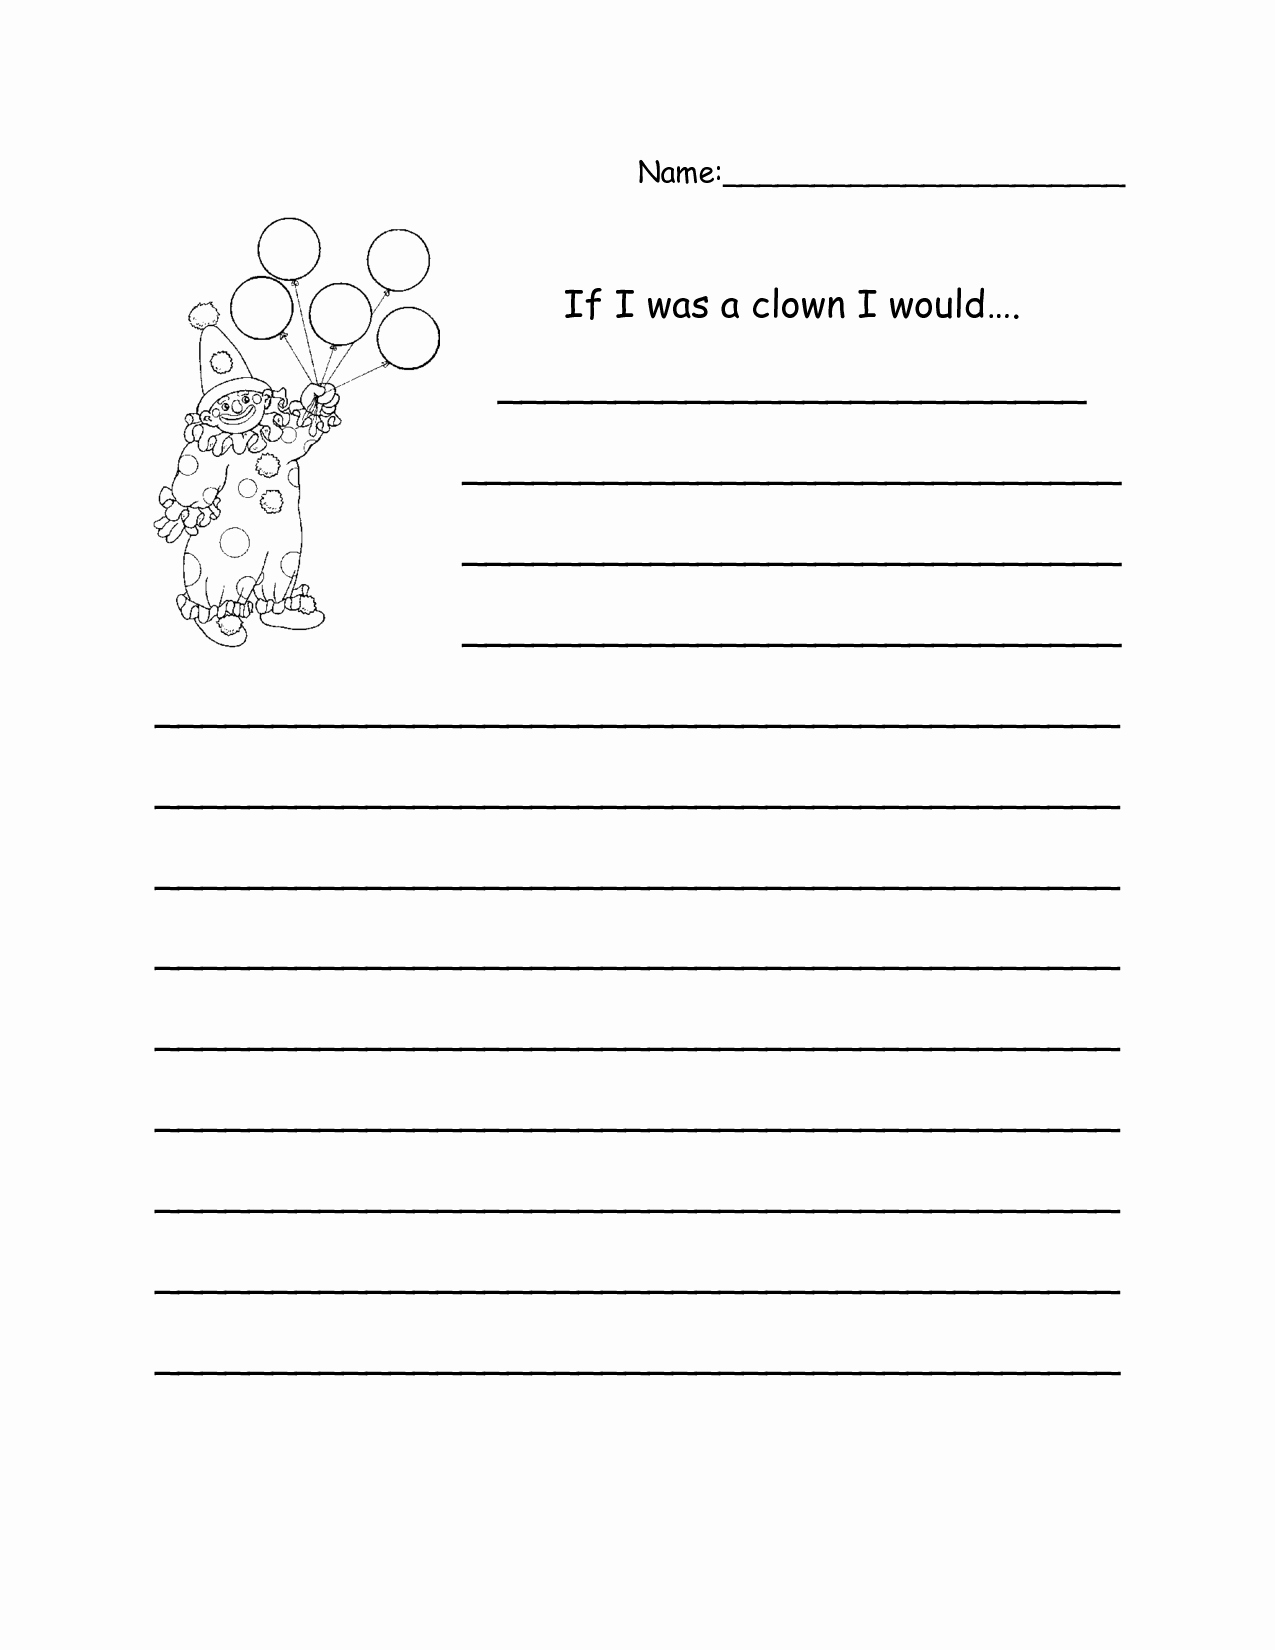 Third Grade Writing Worksheet Beautiful Third Grade Writing Prompts Mon Core Other Rank